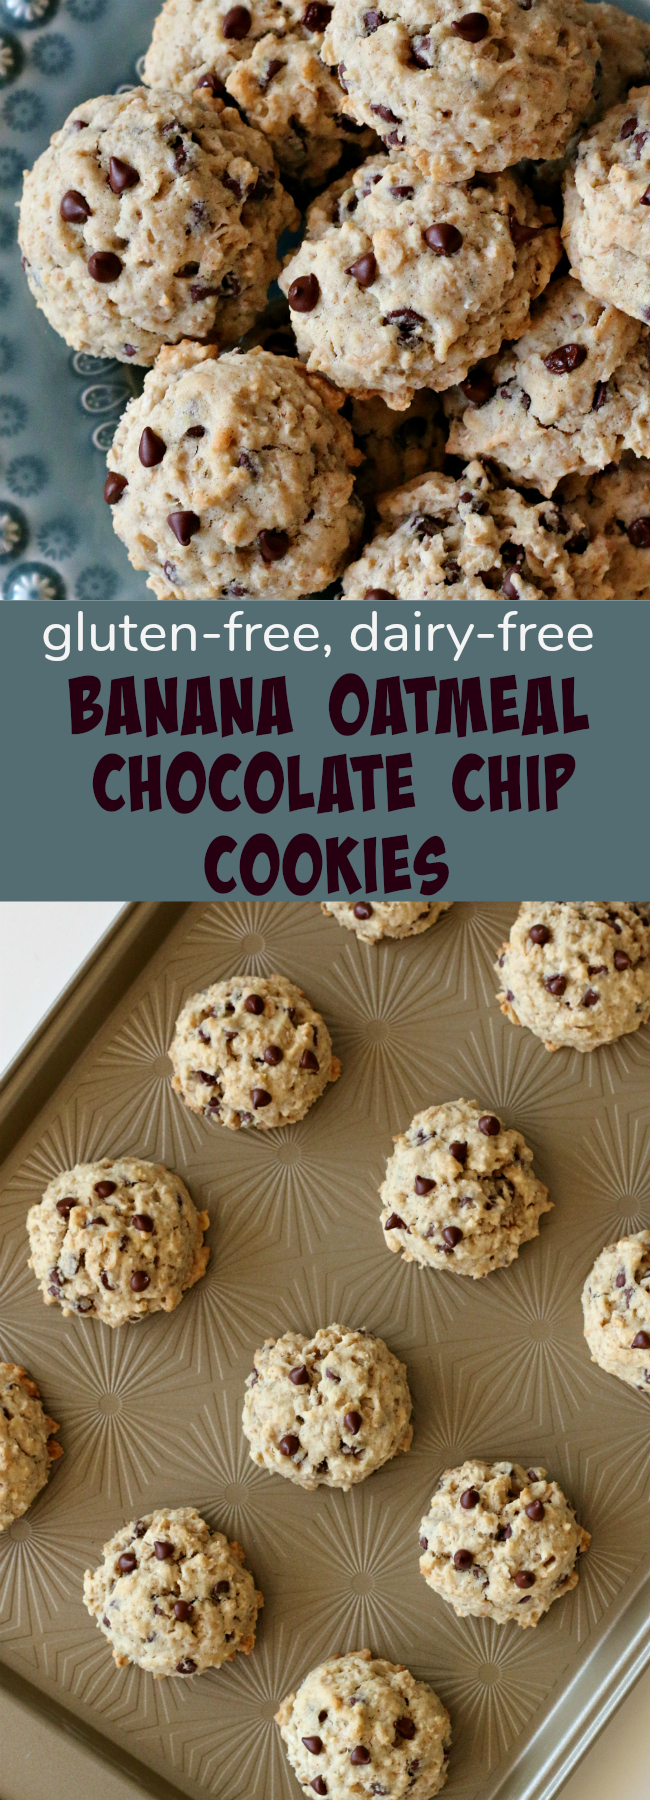 Gluten-free Dairy-free Banana Oatmeal Chocolate Chip Cookies Recipe